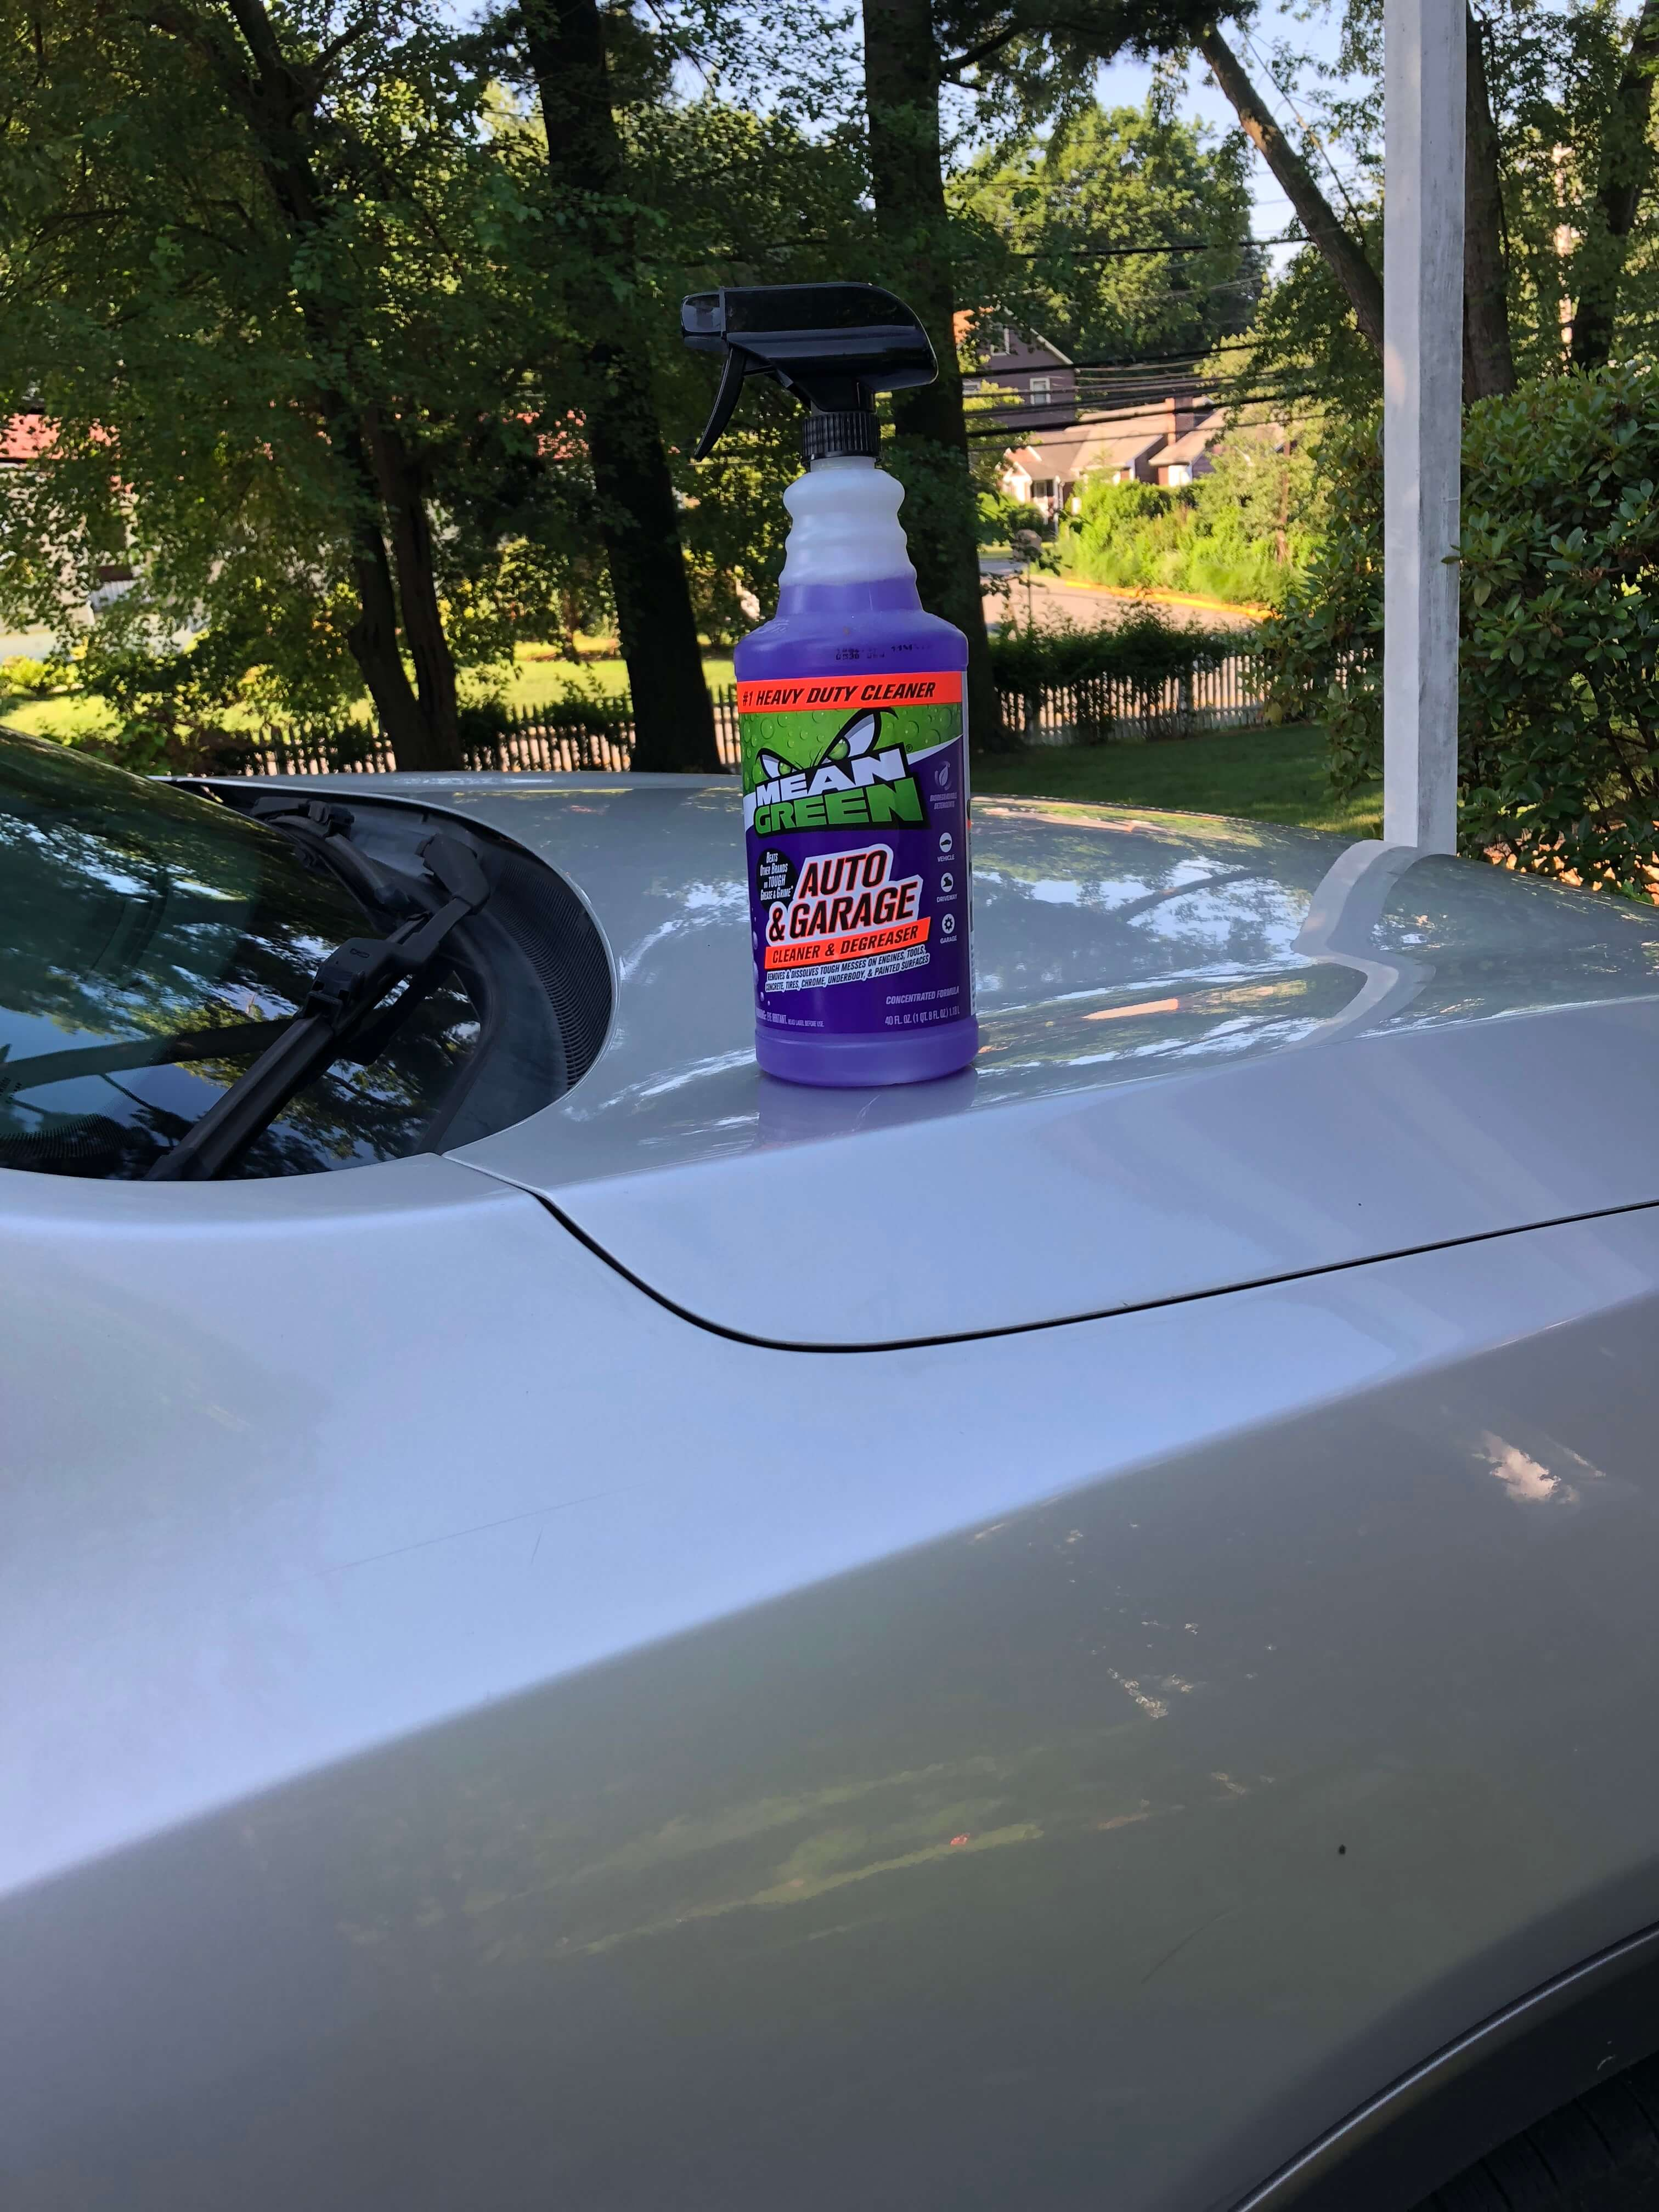 Outdoor Cleaning Solutions mean green auto